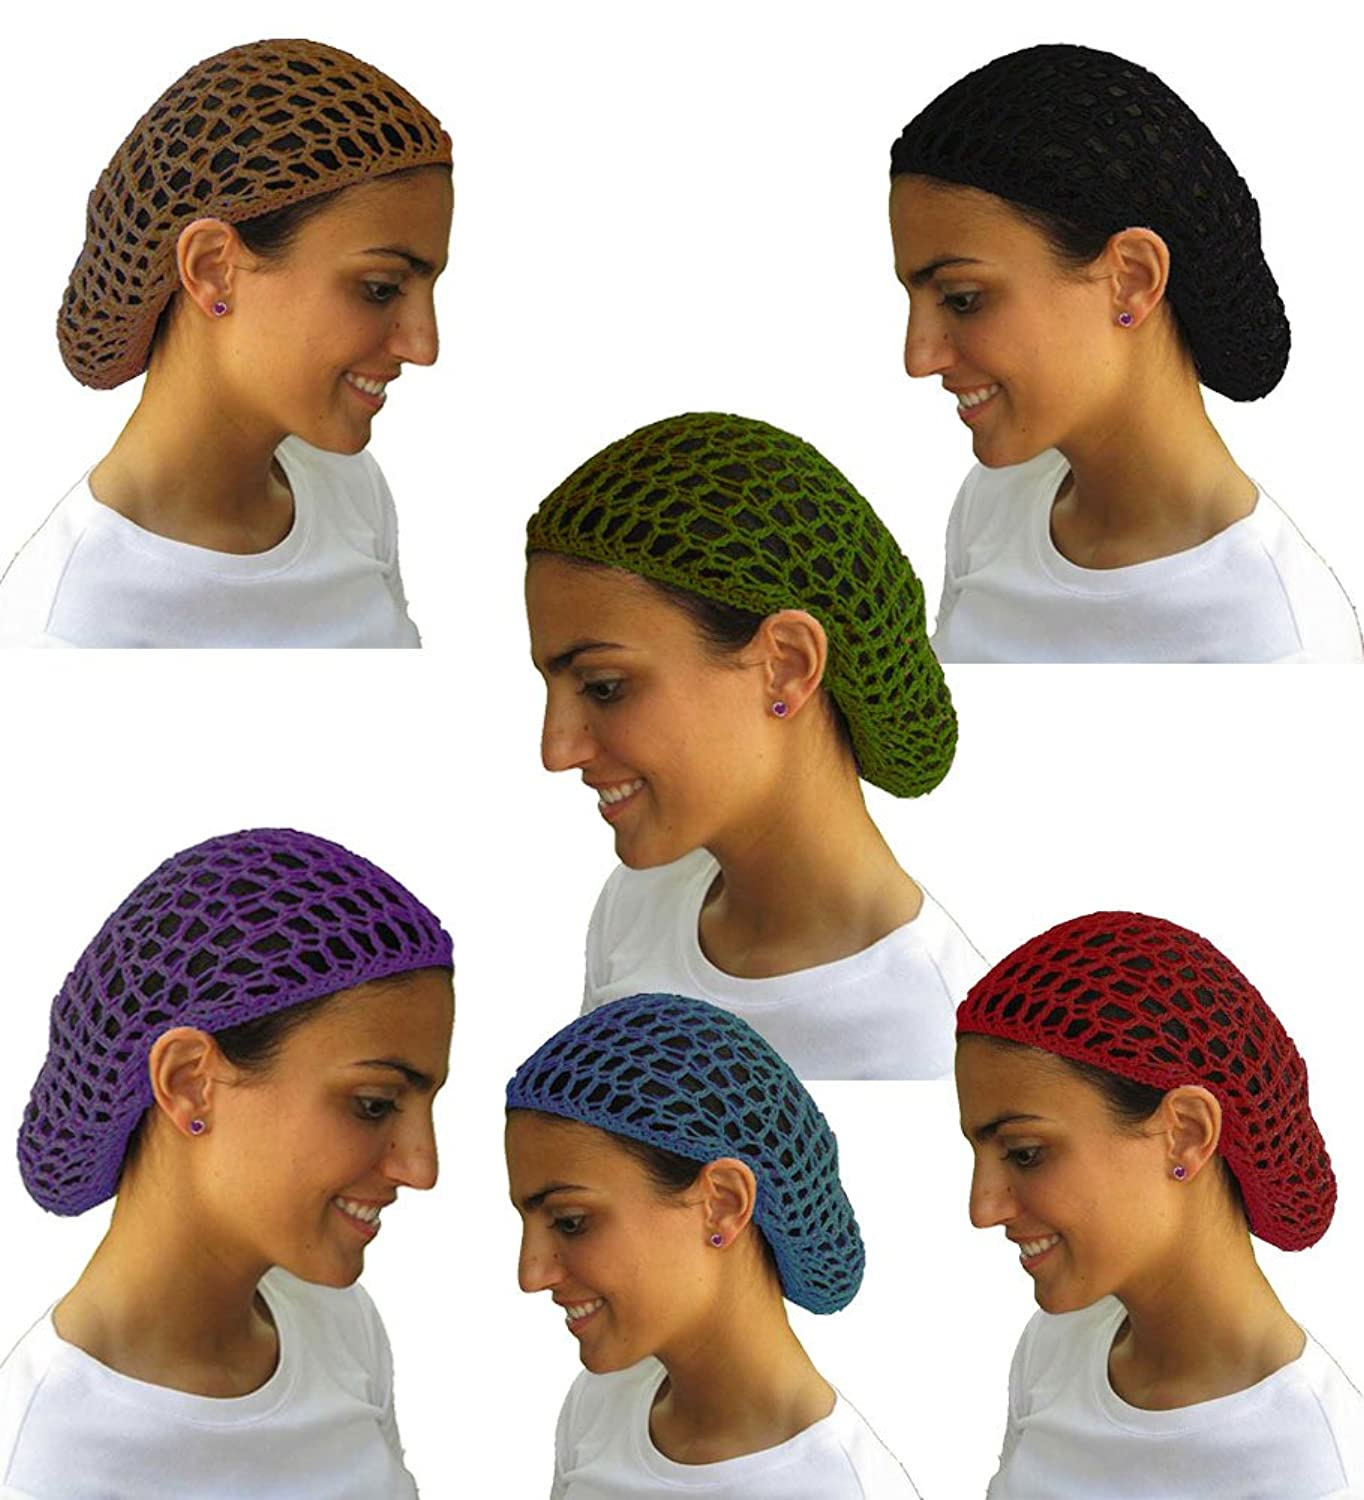 1940s Hair Accessories- Flowers, Snoods, Clips, Bandanas 12 Beautiful Colored Short Hair Net Snoods - Value Pack By CoverYourHair® $18.99 AT vintagedancer.com